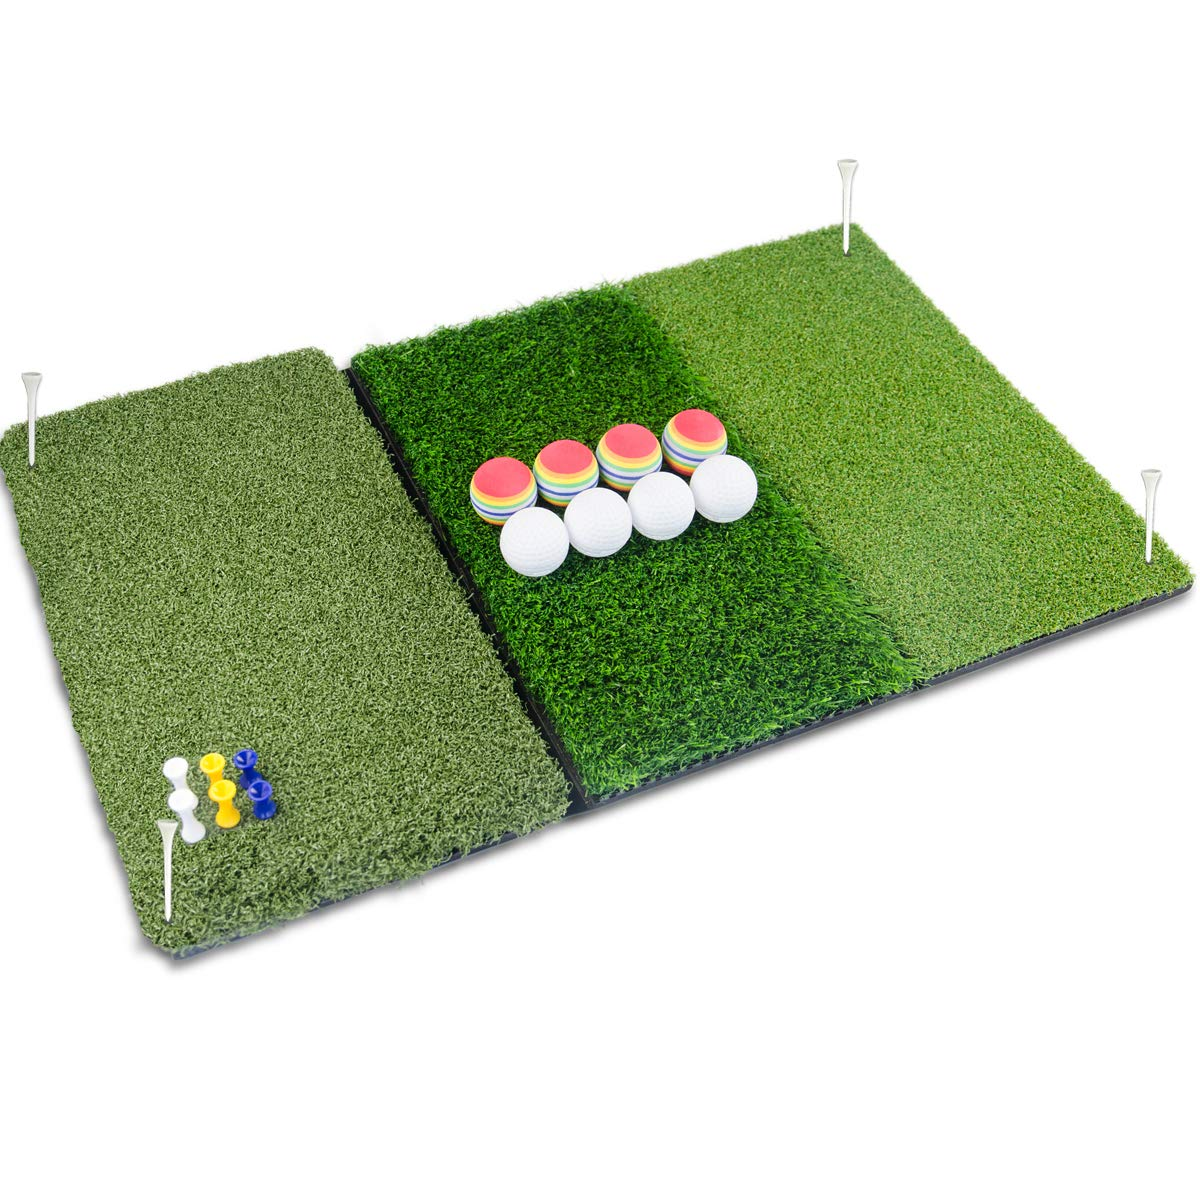 Perfshot Tri-Turf 3-in-1 Golf Hitting Mat with Realistic Tee Box | Fairway | Rough for Chipping Driving Practice Training Mat 16'' 25'' by Perfshot